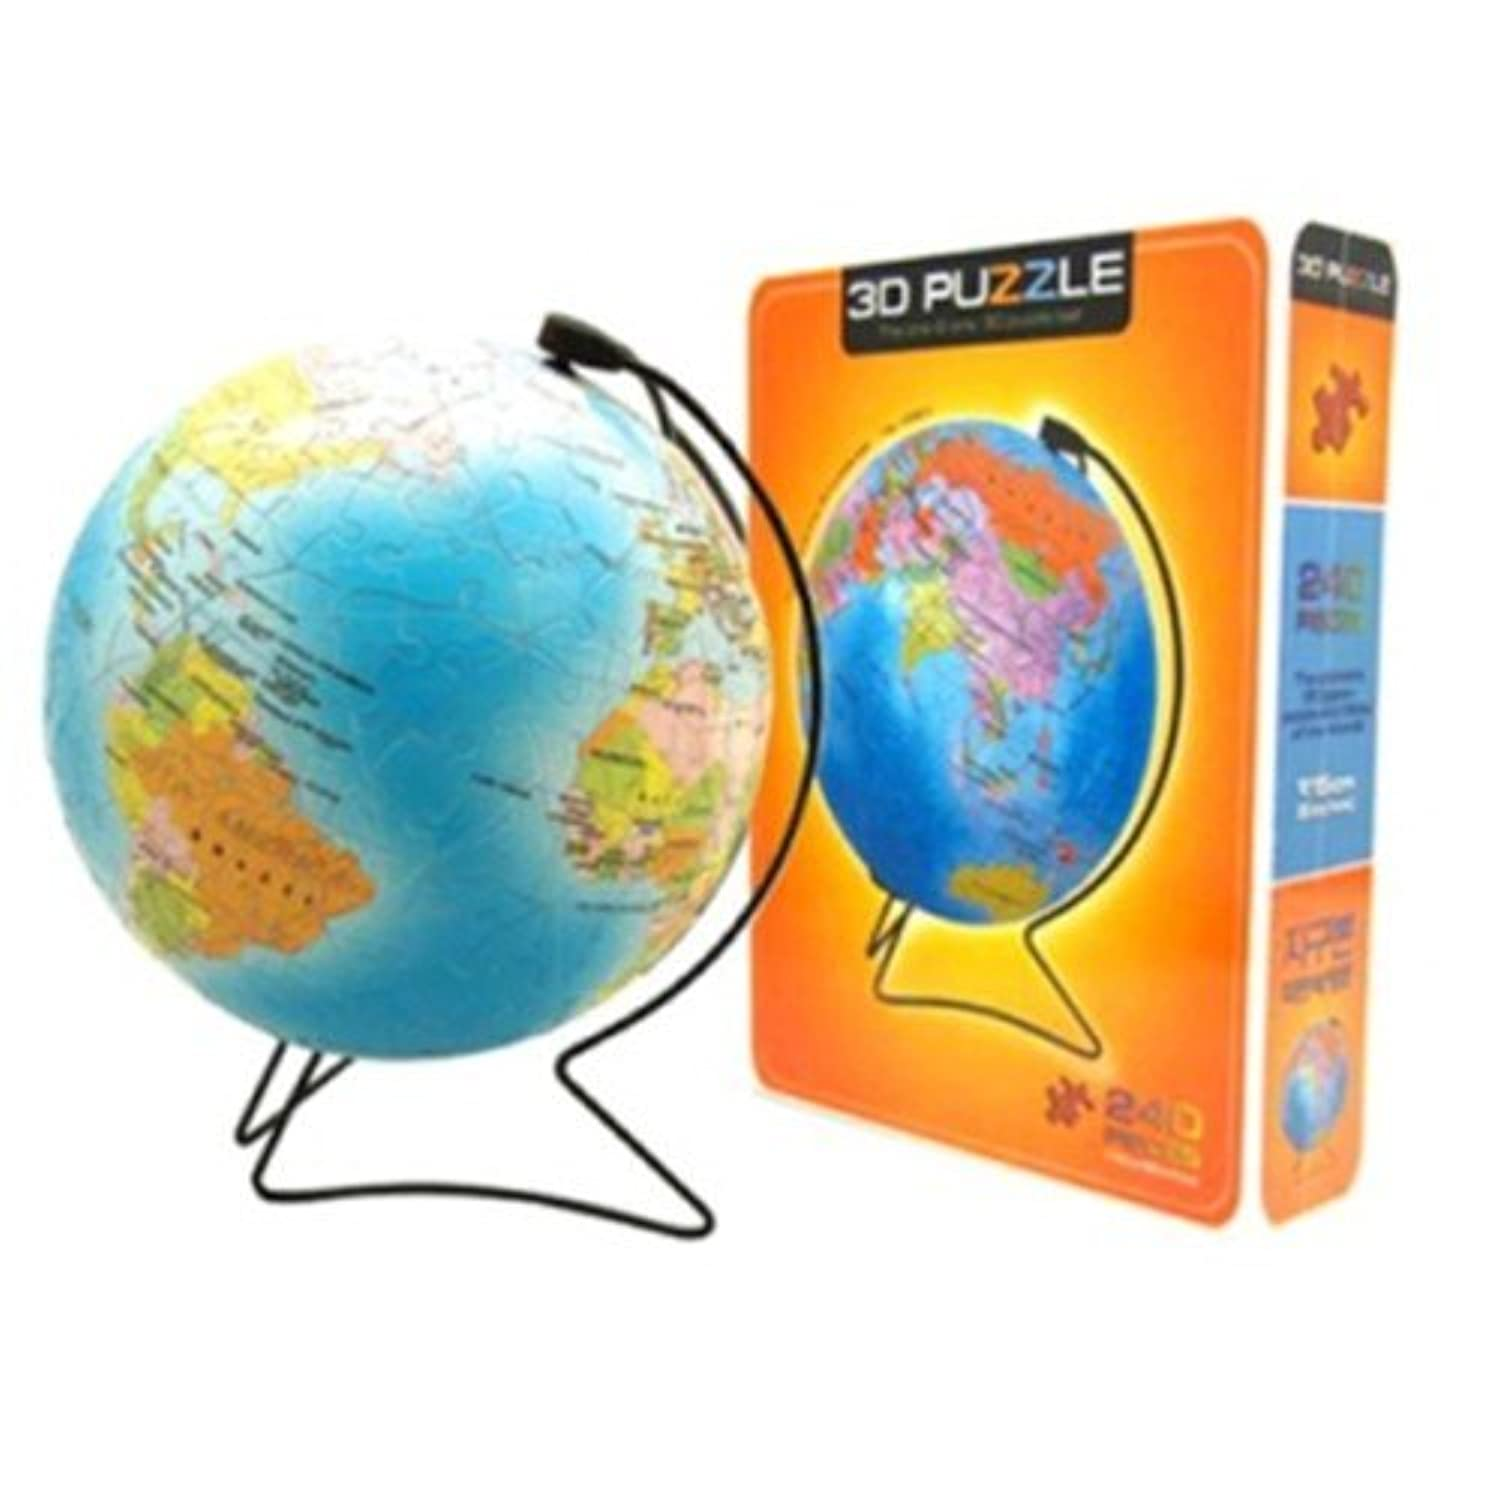 3d Puzzle - 6inch Blue earth V stand